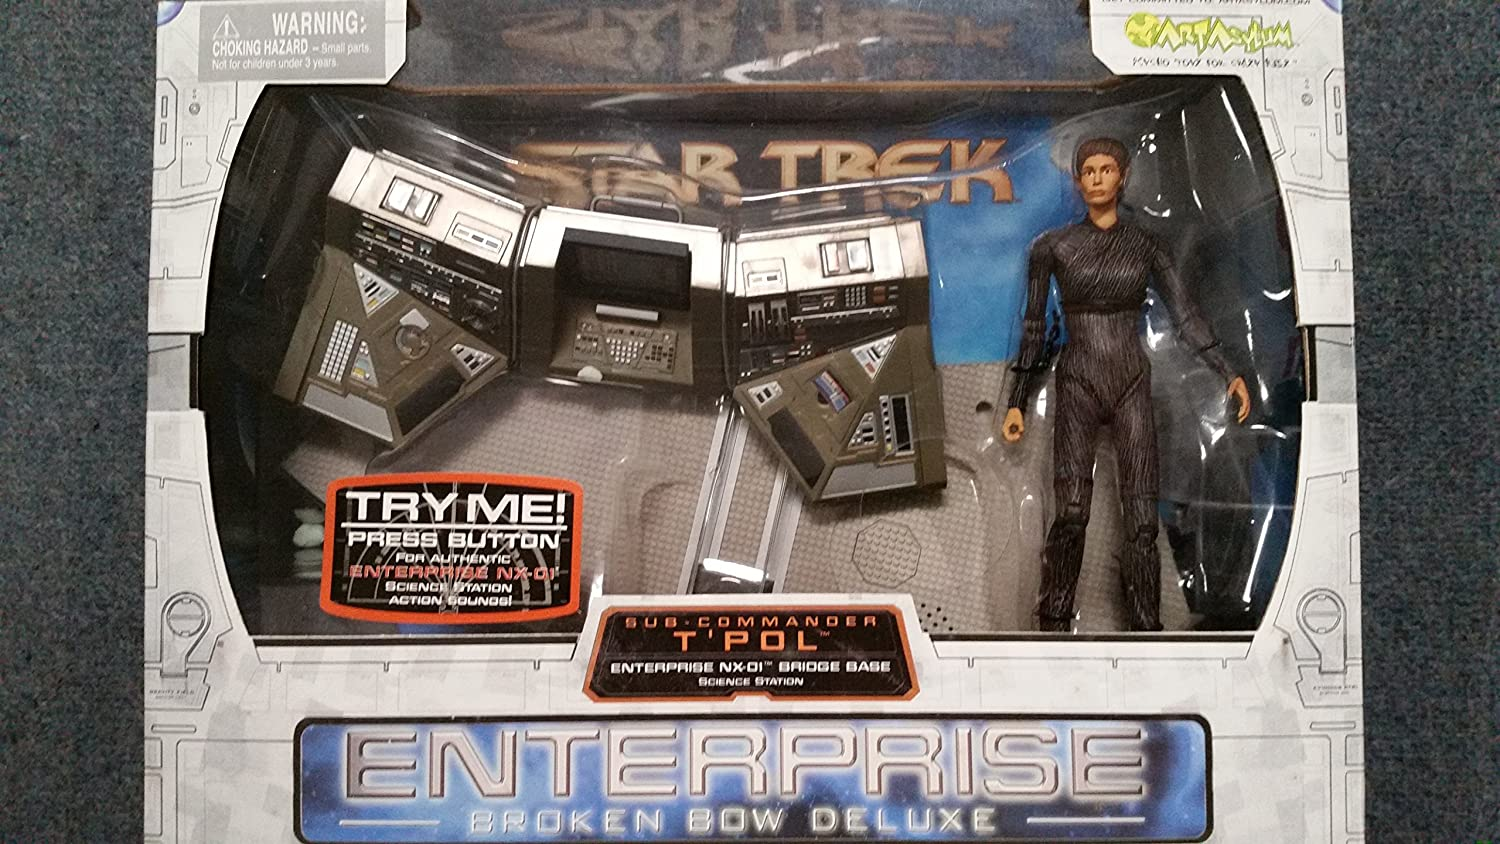 Star Trek Enterprise Broken Bow Deluxe with SubCommander T Pol Action Figure Playset